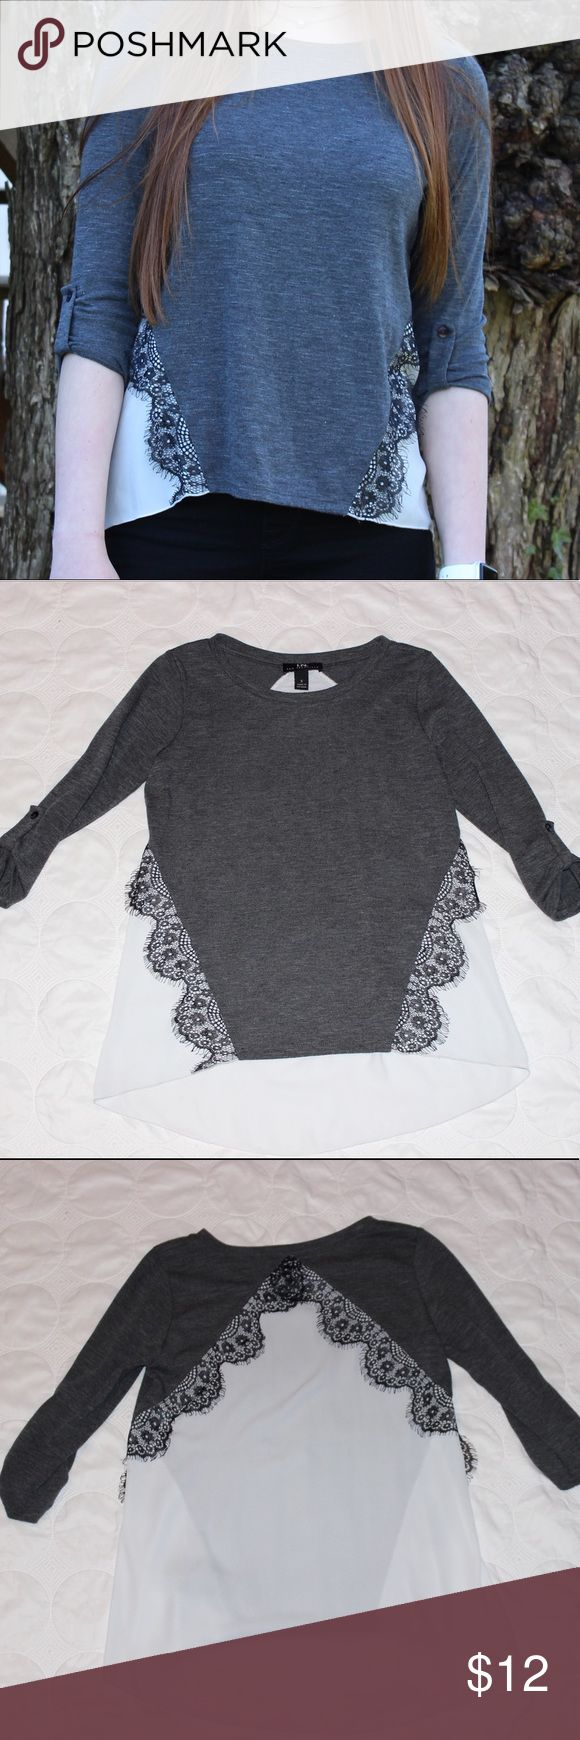 "I.N. San Francisco Dark Grey Lace Blouse ✨I.N. San Fransisco ✨Quarter Sleeves ✨Light White Material ✨Black Lace Detailing  ✨Excellent Condition, Like-new   Model: -weight: 125 lbs -height: 5'7""  ✨✨✨DISCOUNTS ON BUNDLES✨✨✨ I.N. San Fransisco Tops Blouses"